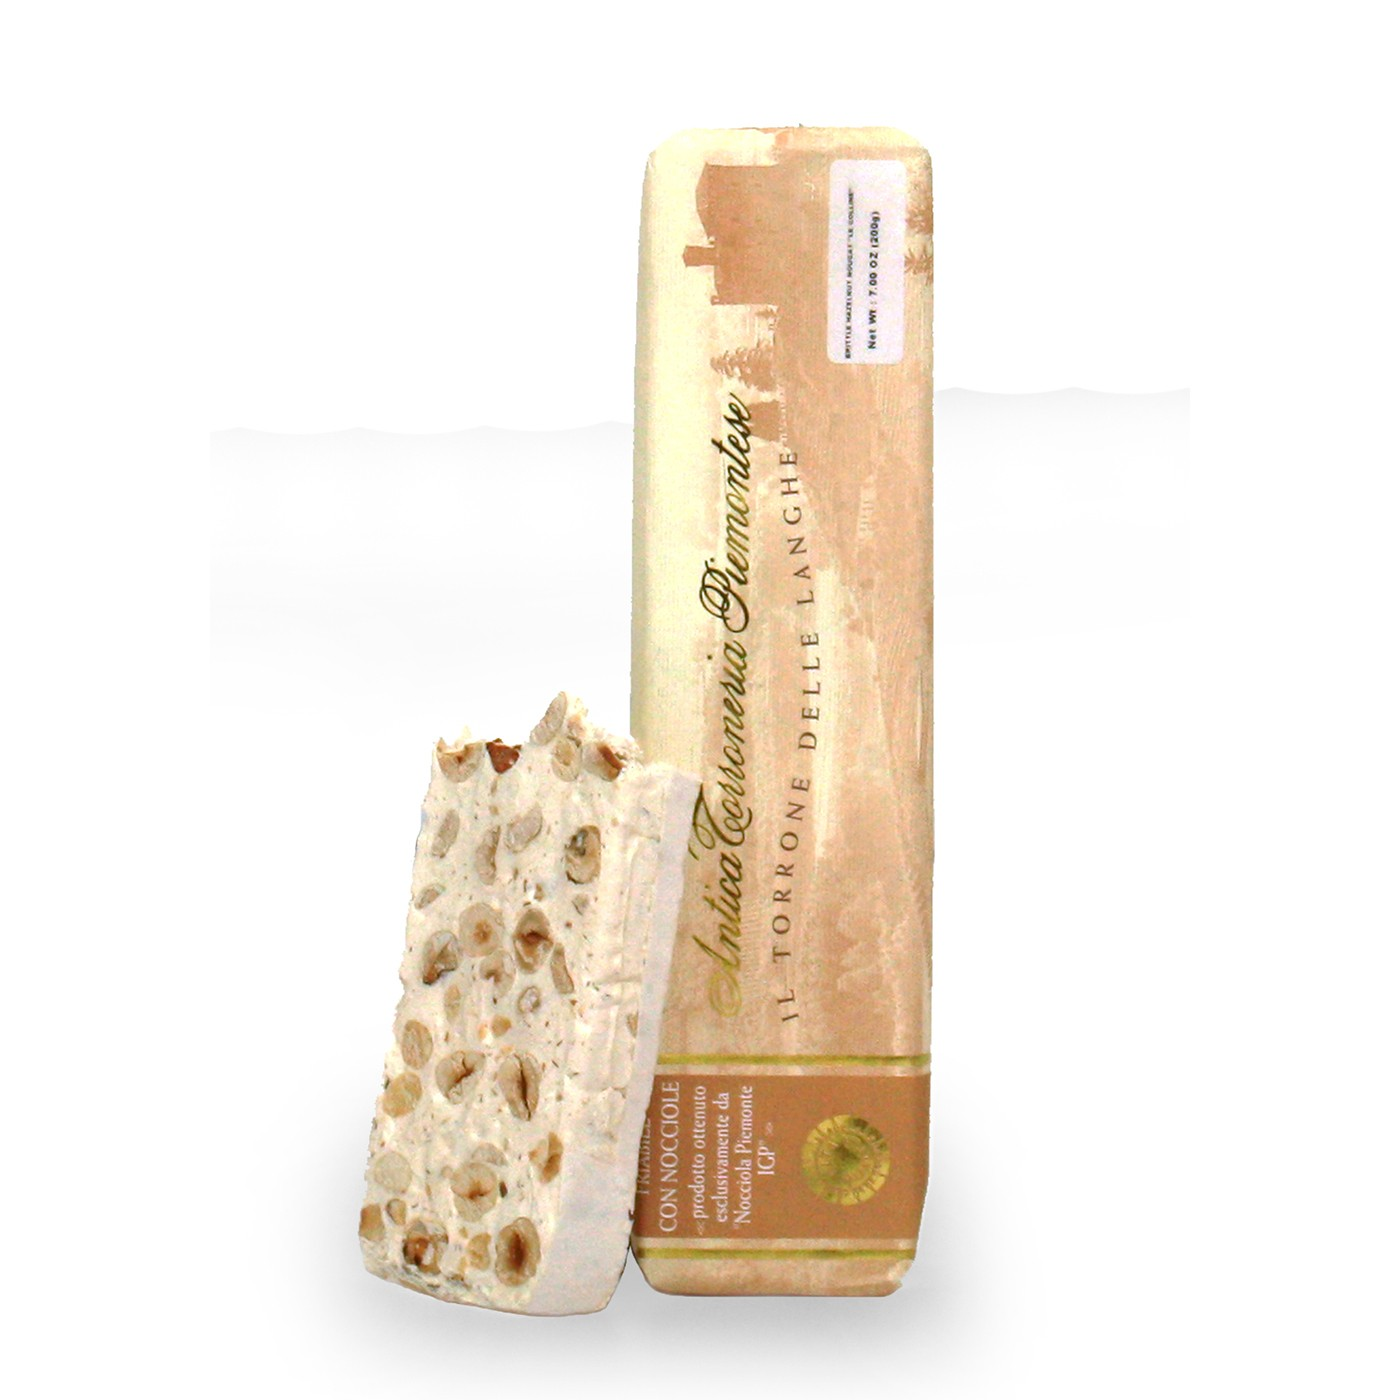 Torrone with Hazelnut 7.1 oz